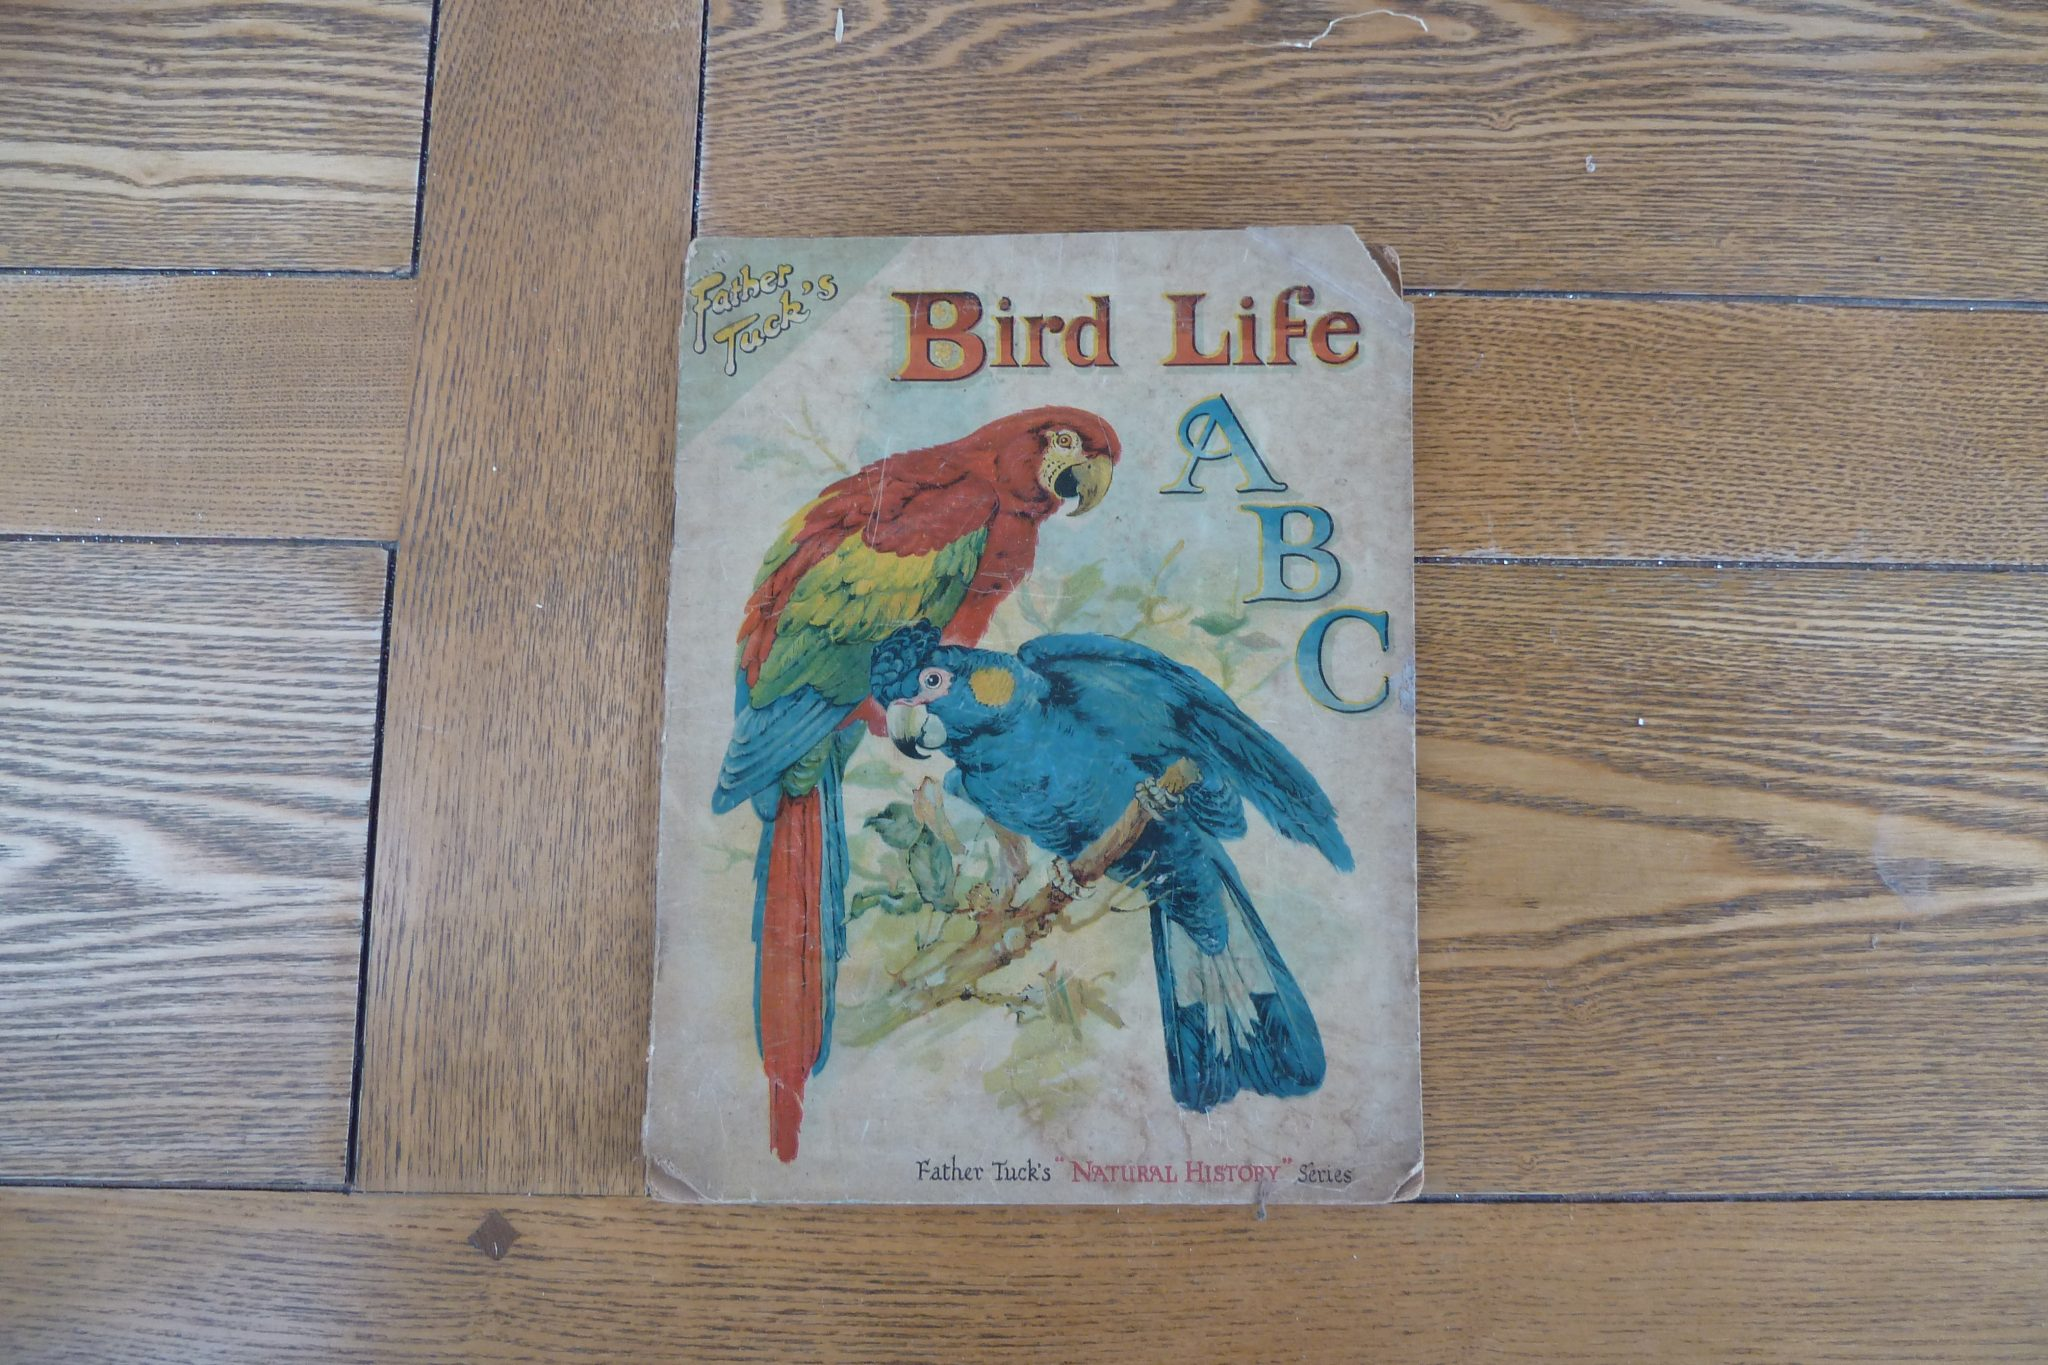 Bird Life ABC (Father Tuck's Natural History Series)